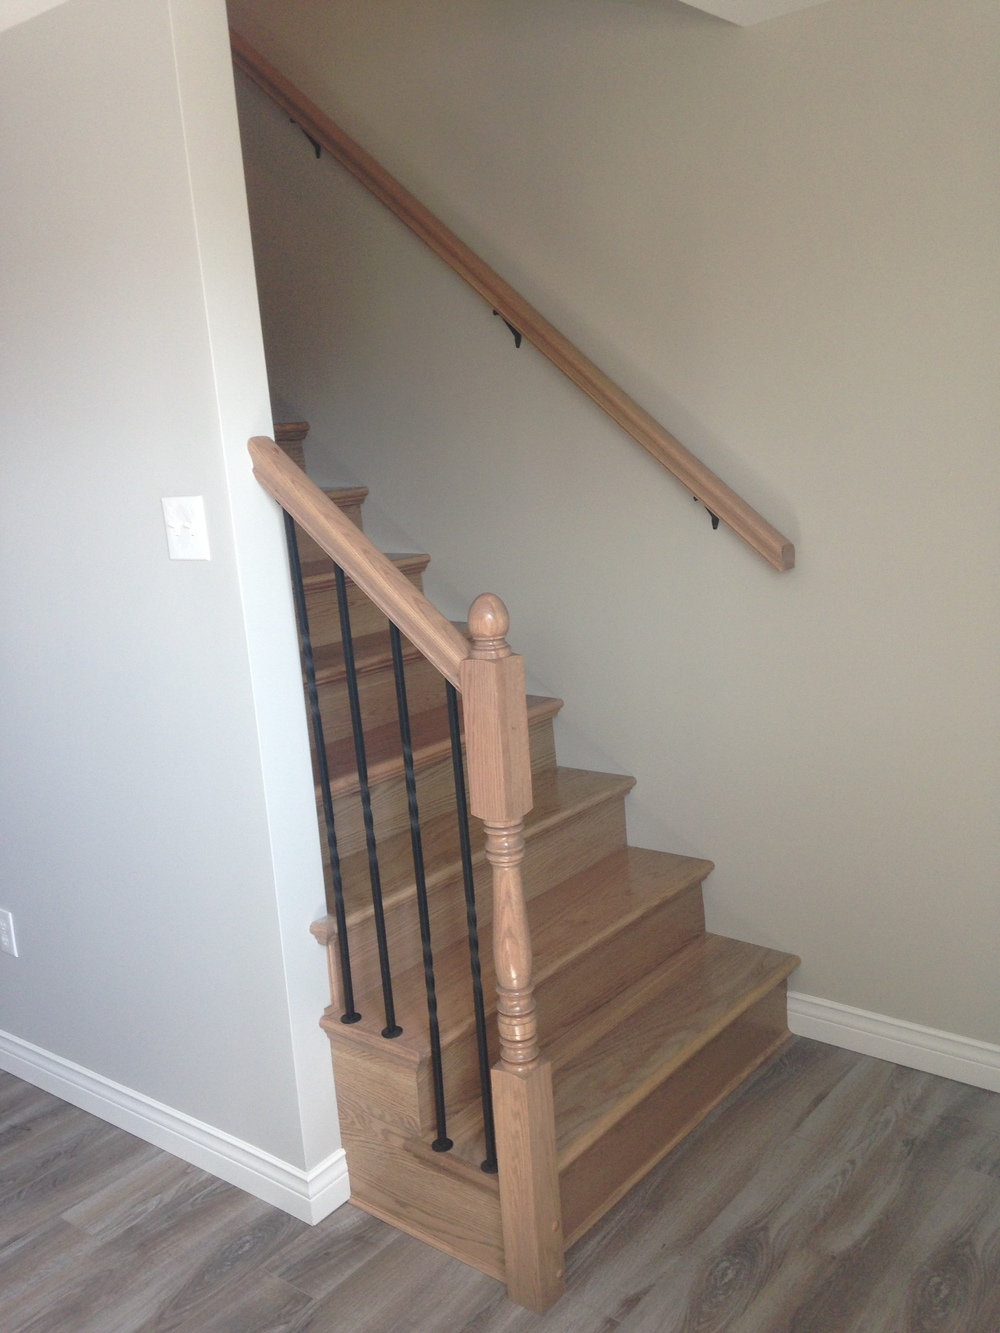 Newly constructed stairs leading to main floor of home